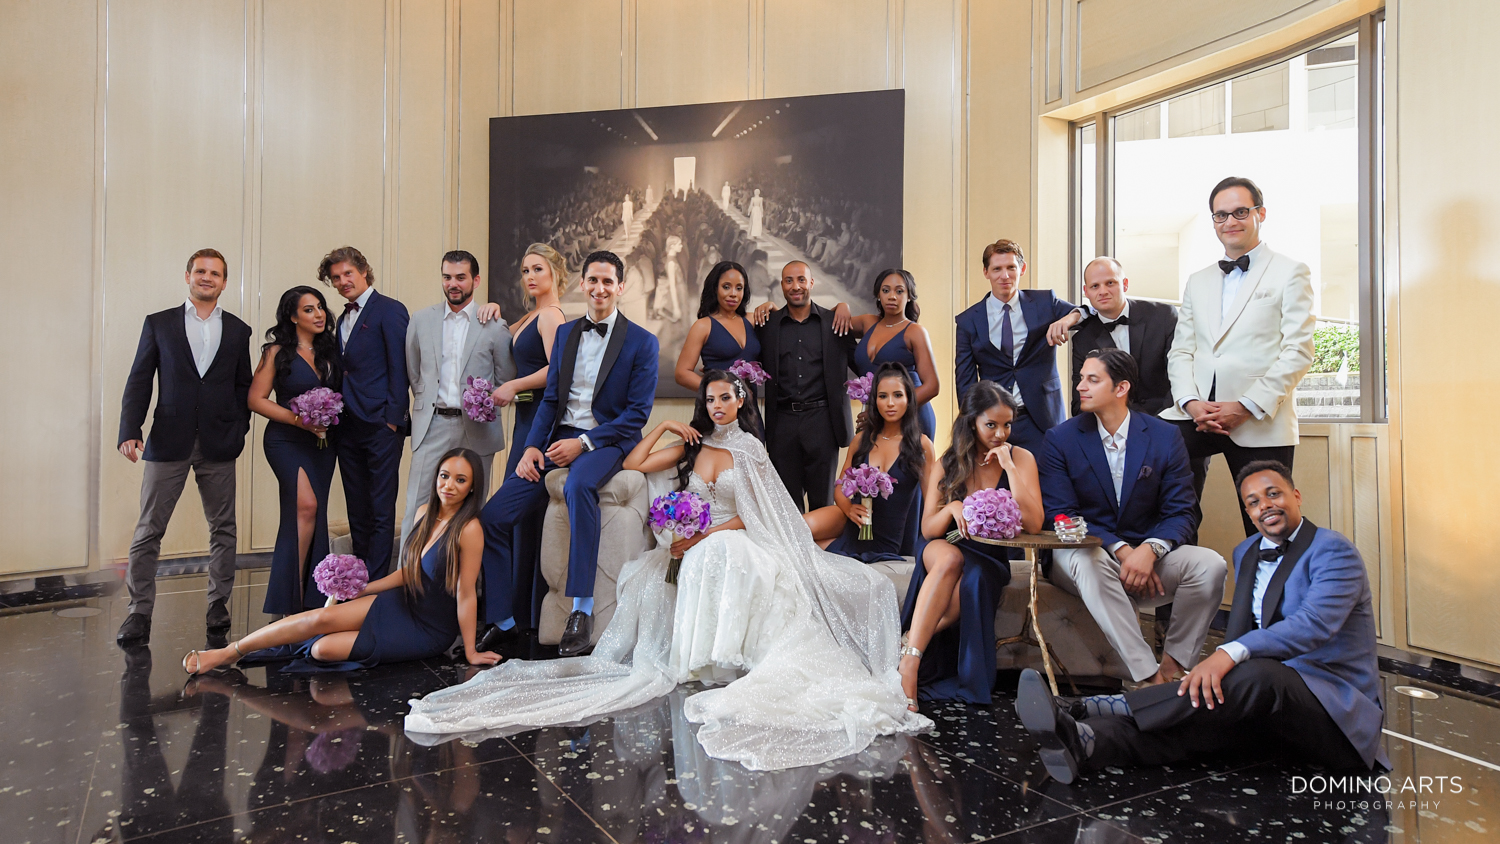 Fashion wedding pictures of wedding party at The St. Regis Bal Harbour